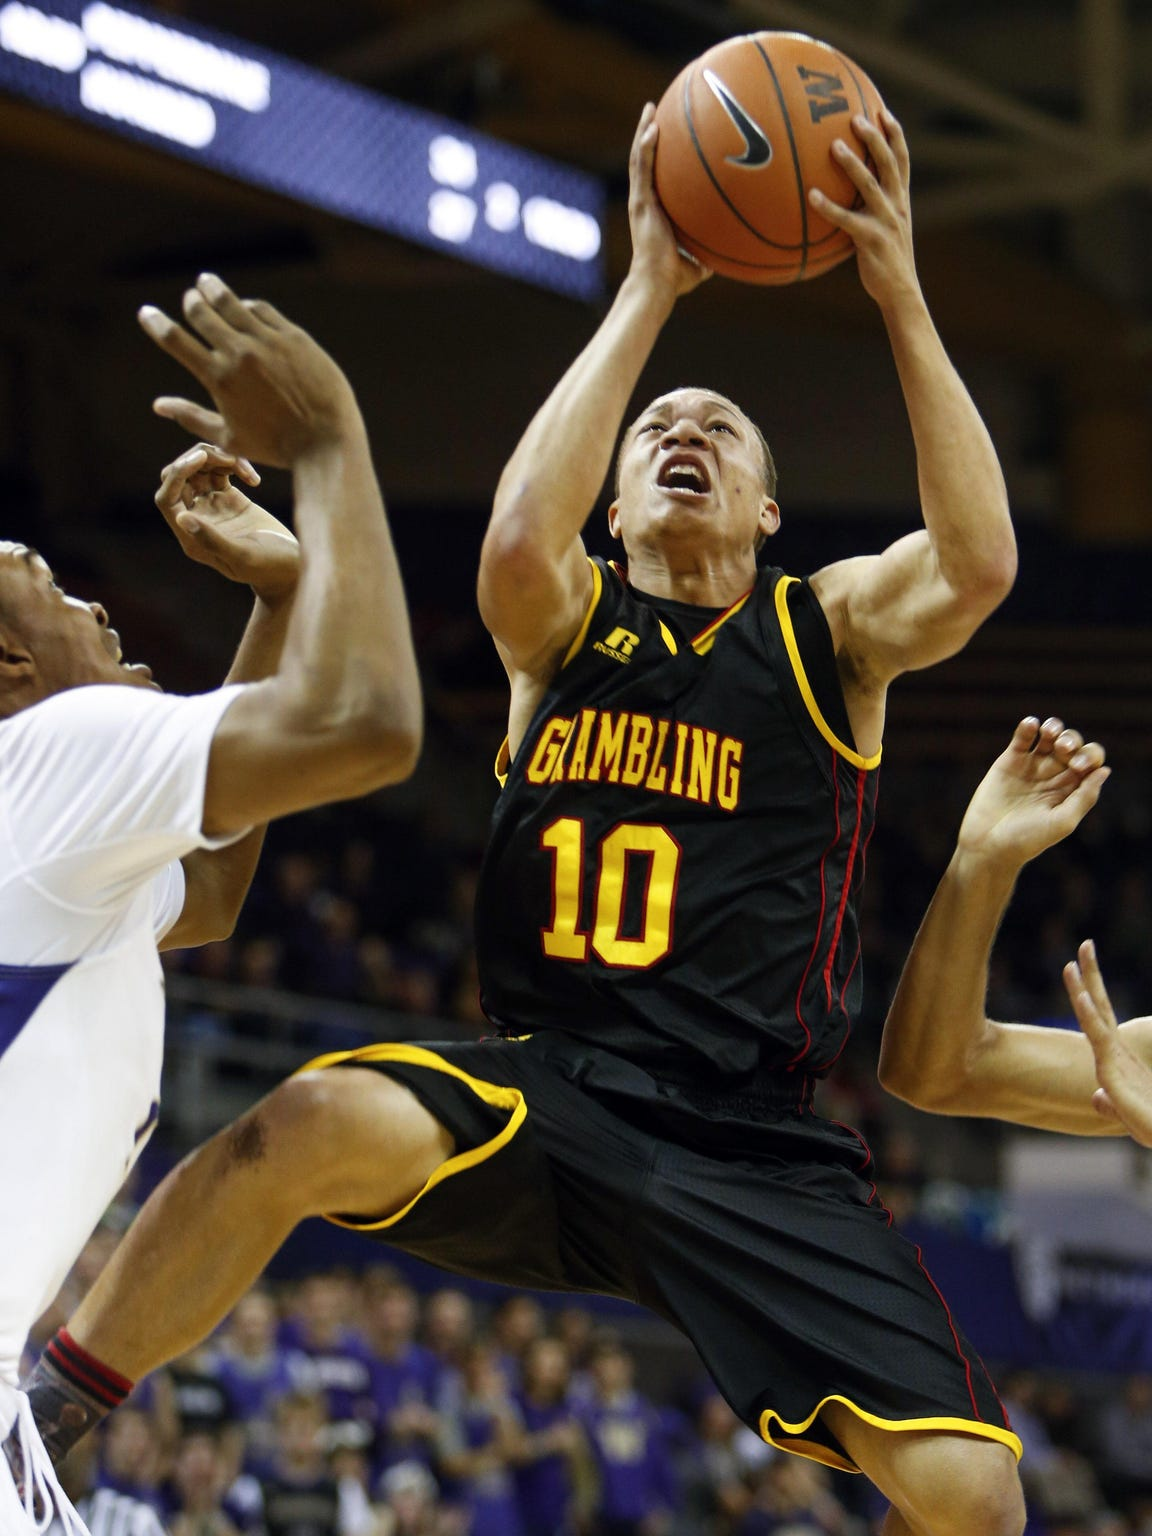 Grambling point guard Chase Cormier logged more than